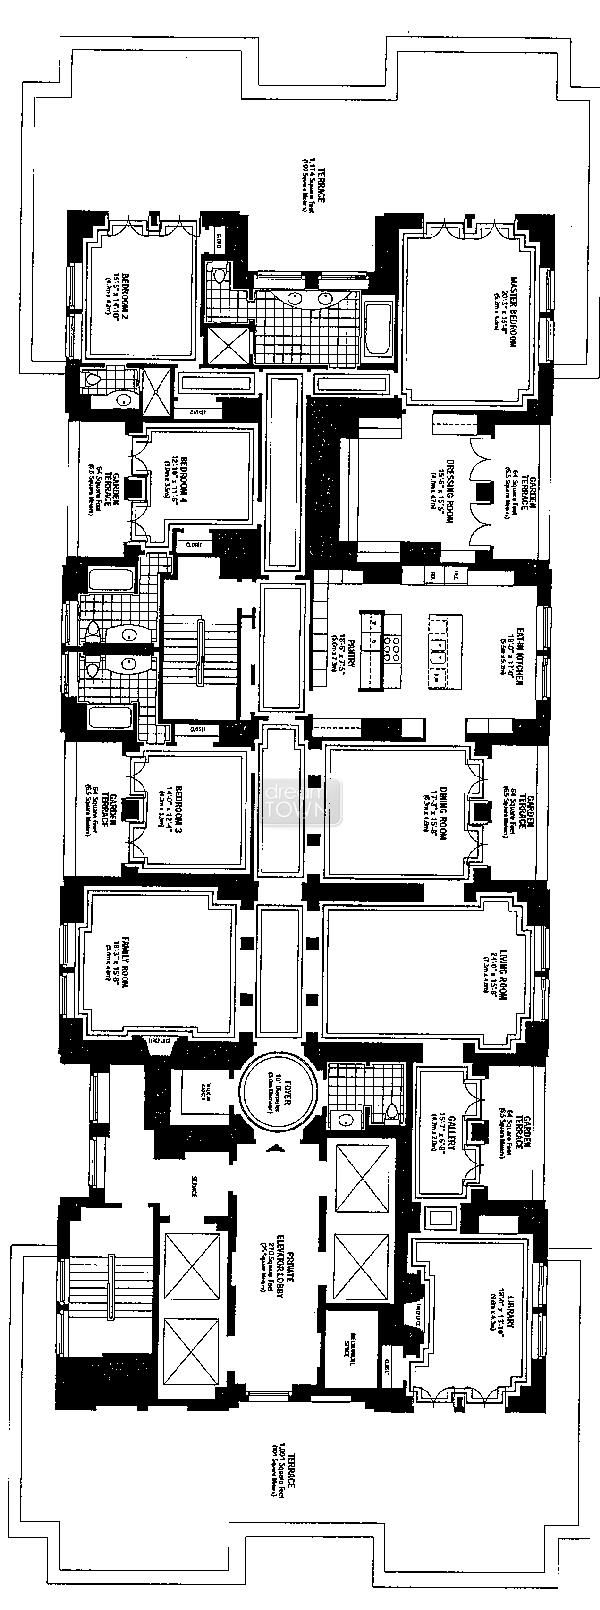 1000 images about floor plan fanatic on pinterest house for Walton house floor plan